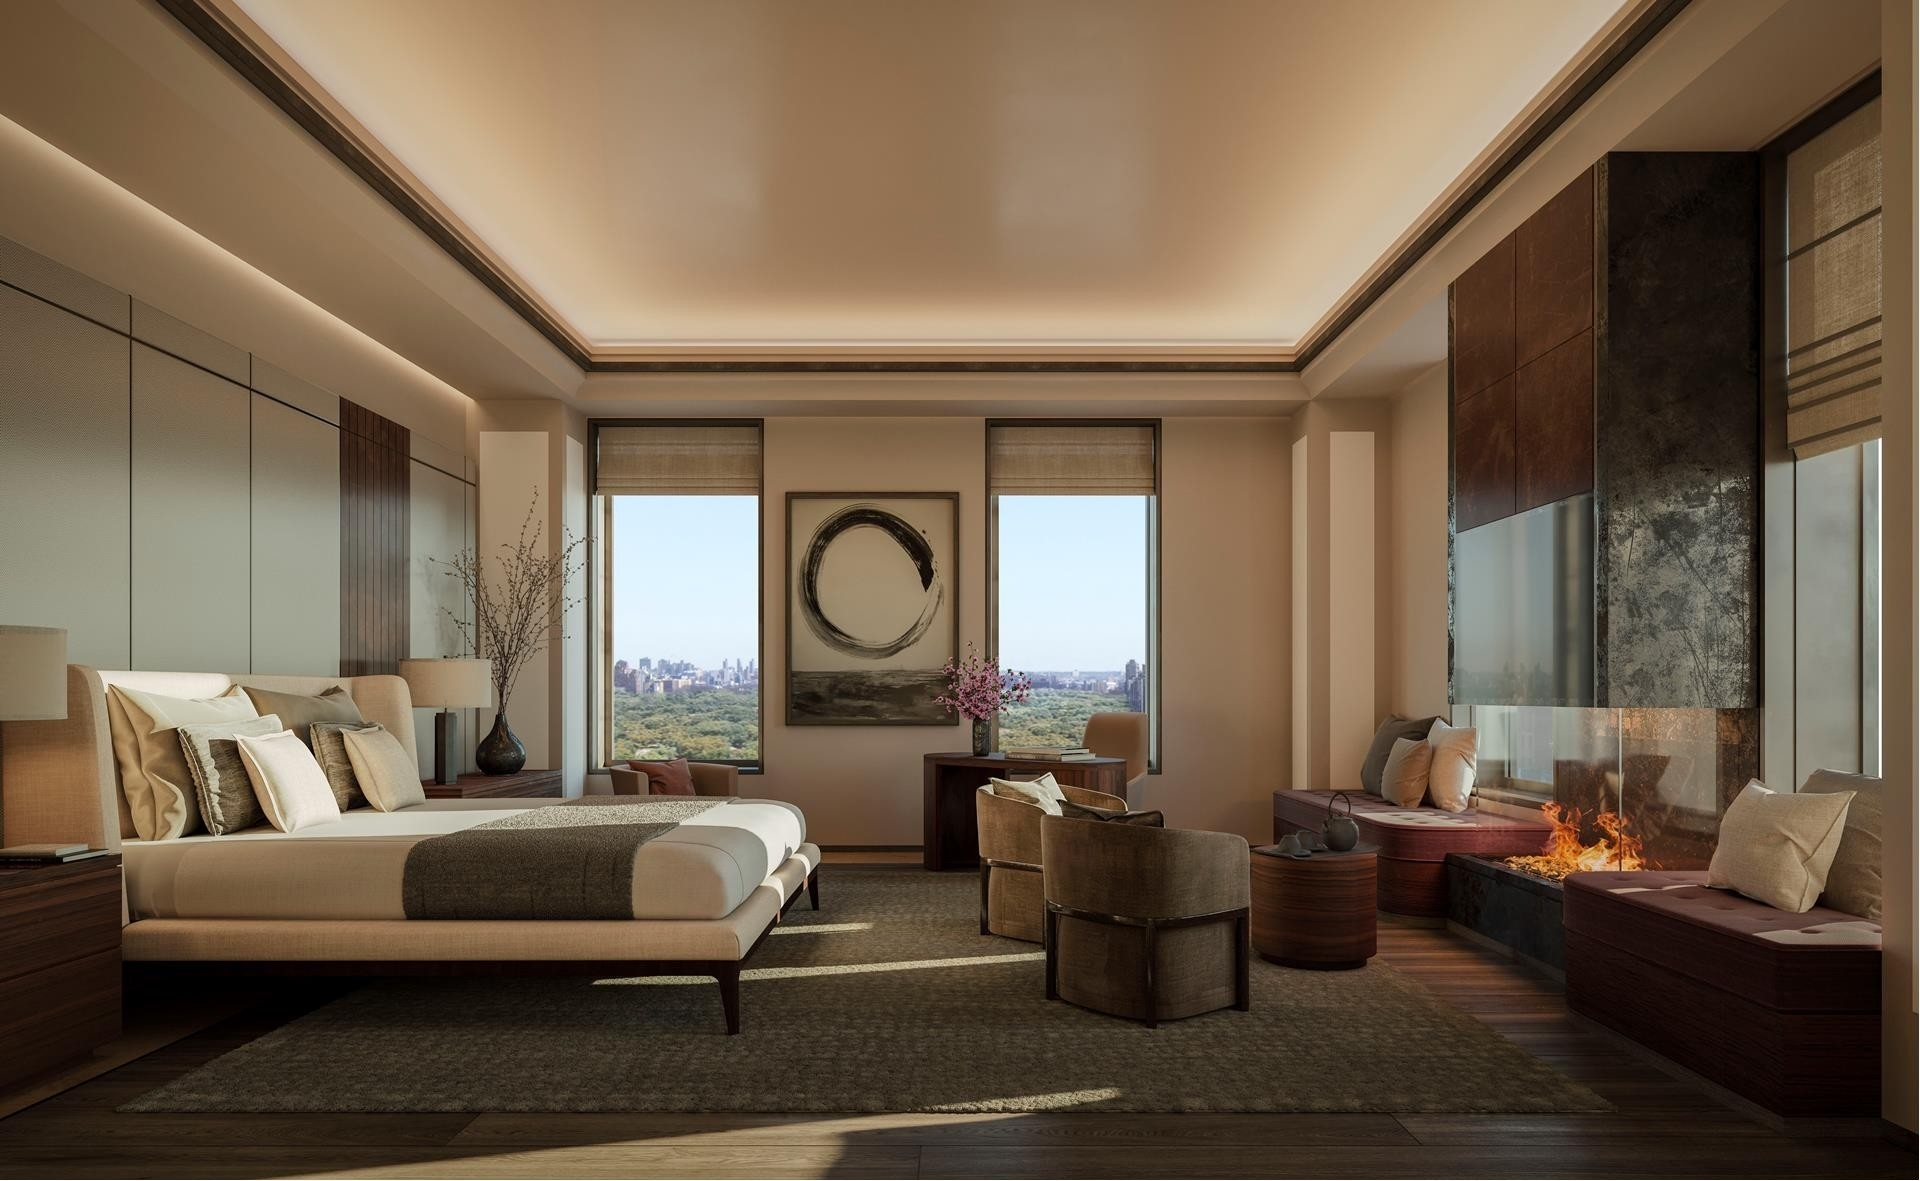 2. Condominiums for Sale at Aman NY Residences, 730 FIFTH AVE , PH21 Midtown West, New York, NY 10019